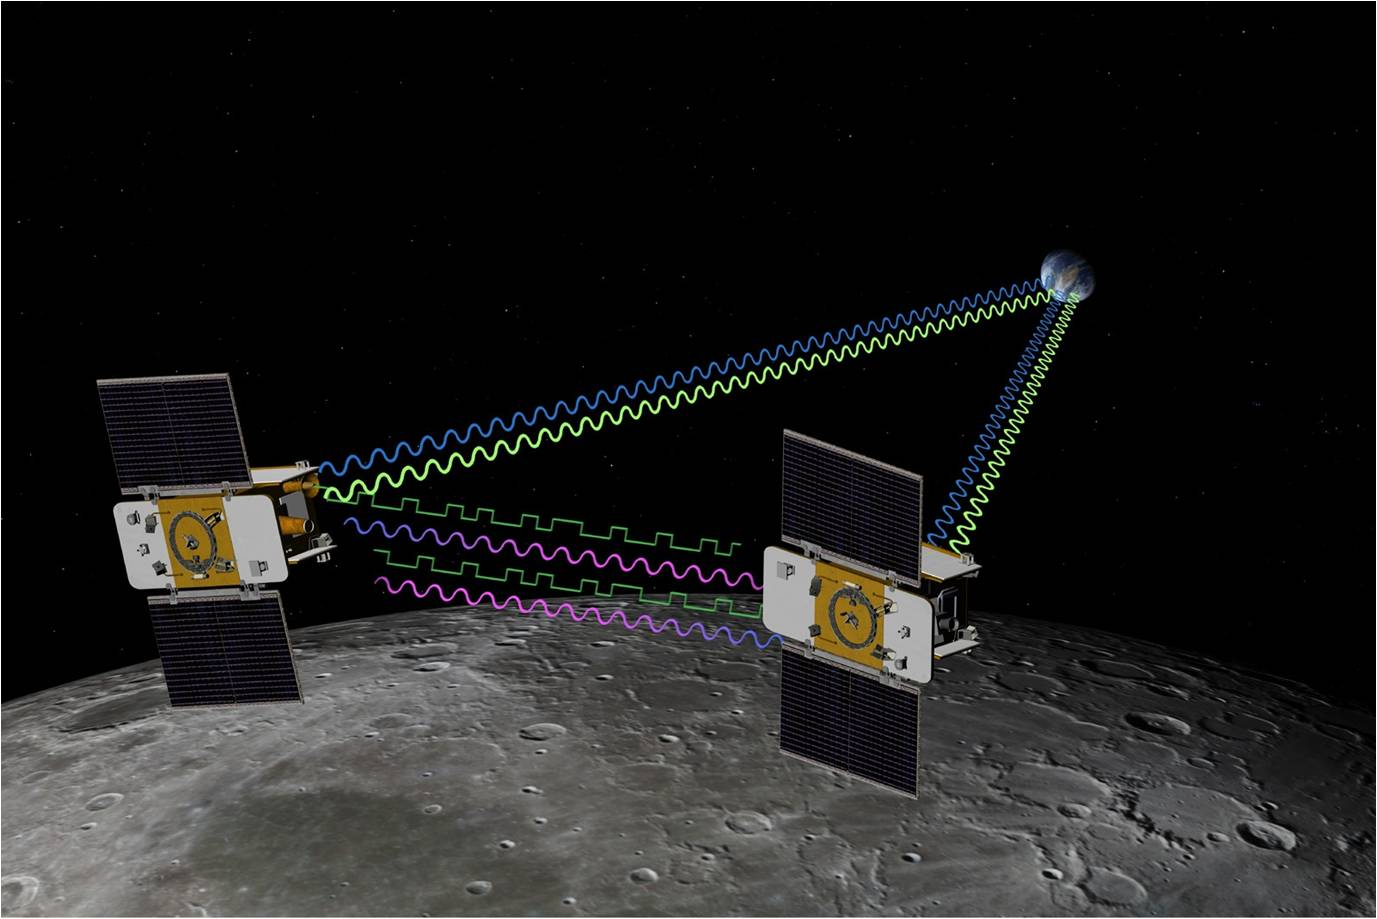 Twin NASA Moon Probes Begin Mapping Lunar Gravity